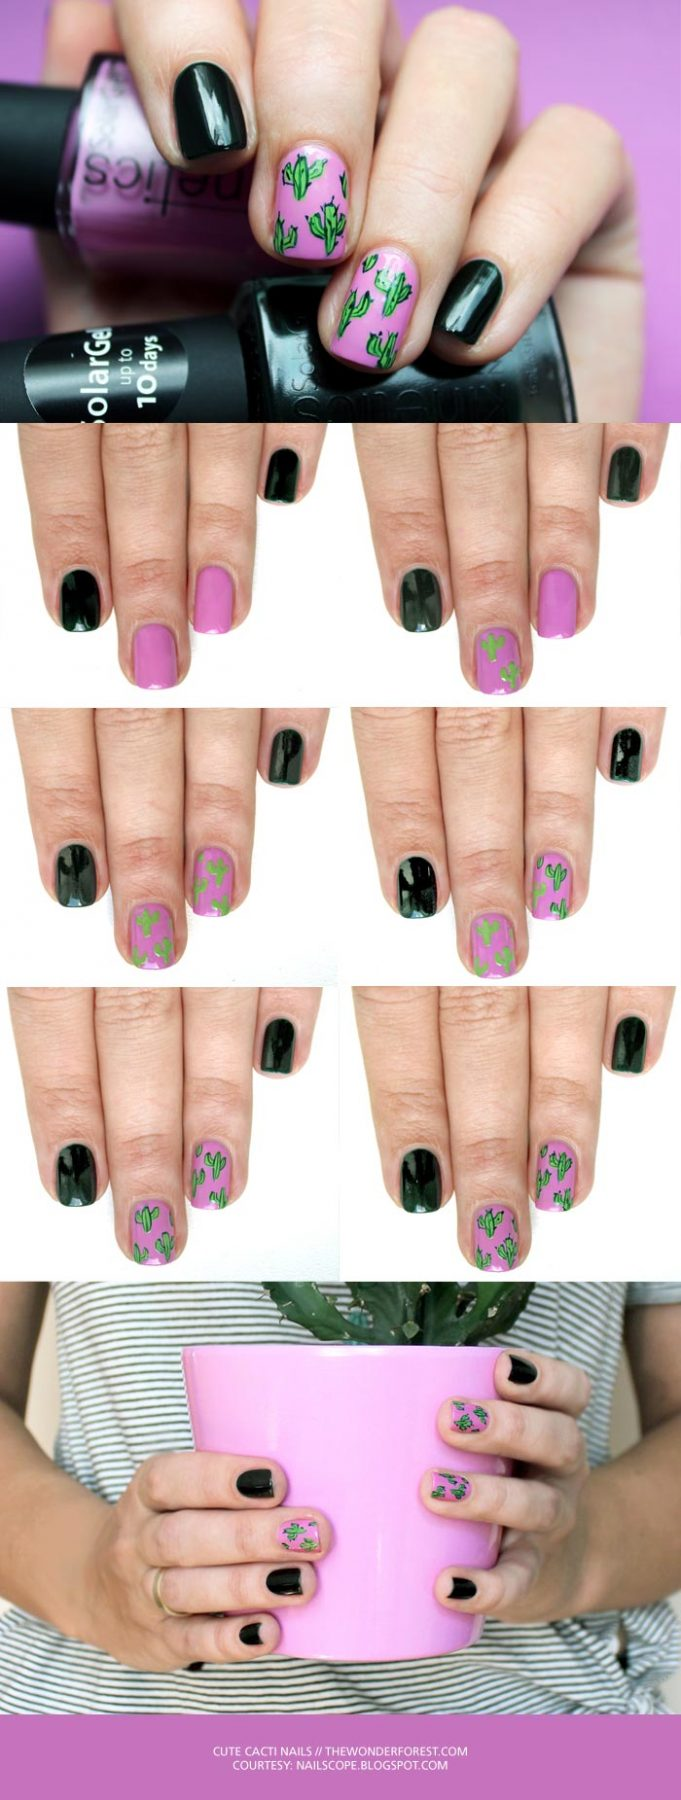 Cute Cacti Nail Art Tutorial